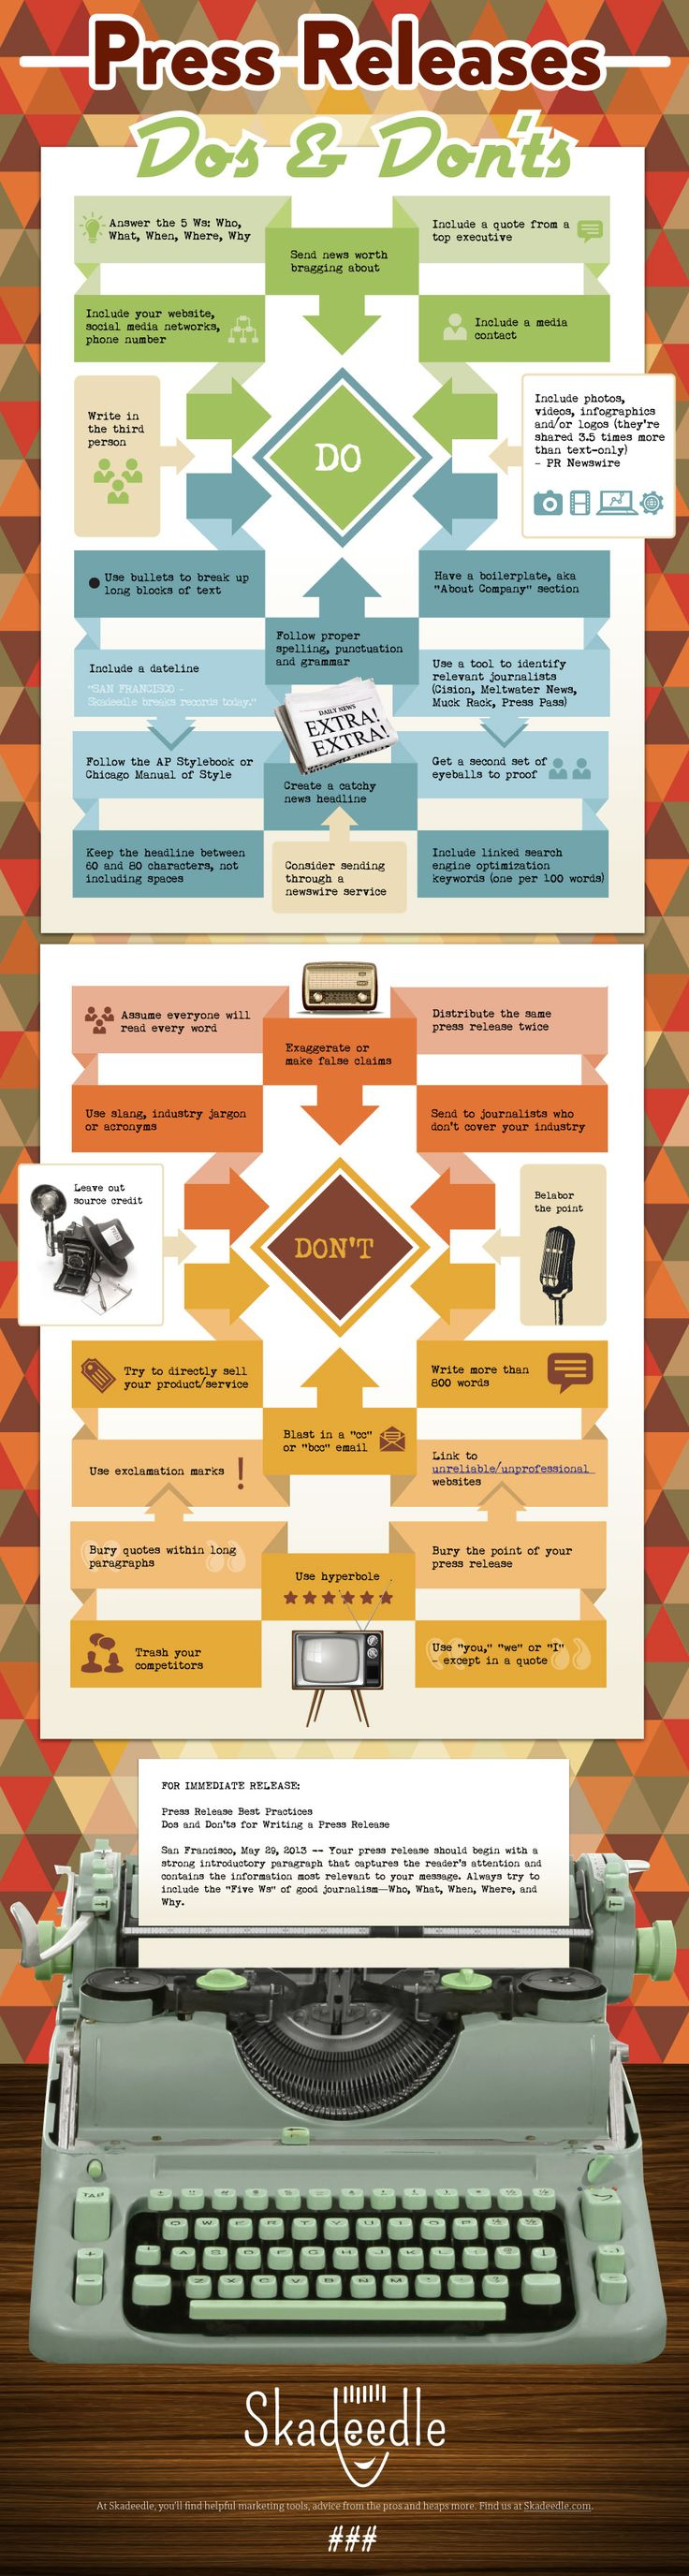 #INFOgraphic > Press Releases 101: You might not be a PR professional or a journalist, but saving this cheat sheet you can have some guidance in writing a decent press release so that you can effectively communicate an event or story.   > http://infographicsmania.com/press-releases-101/